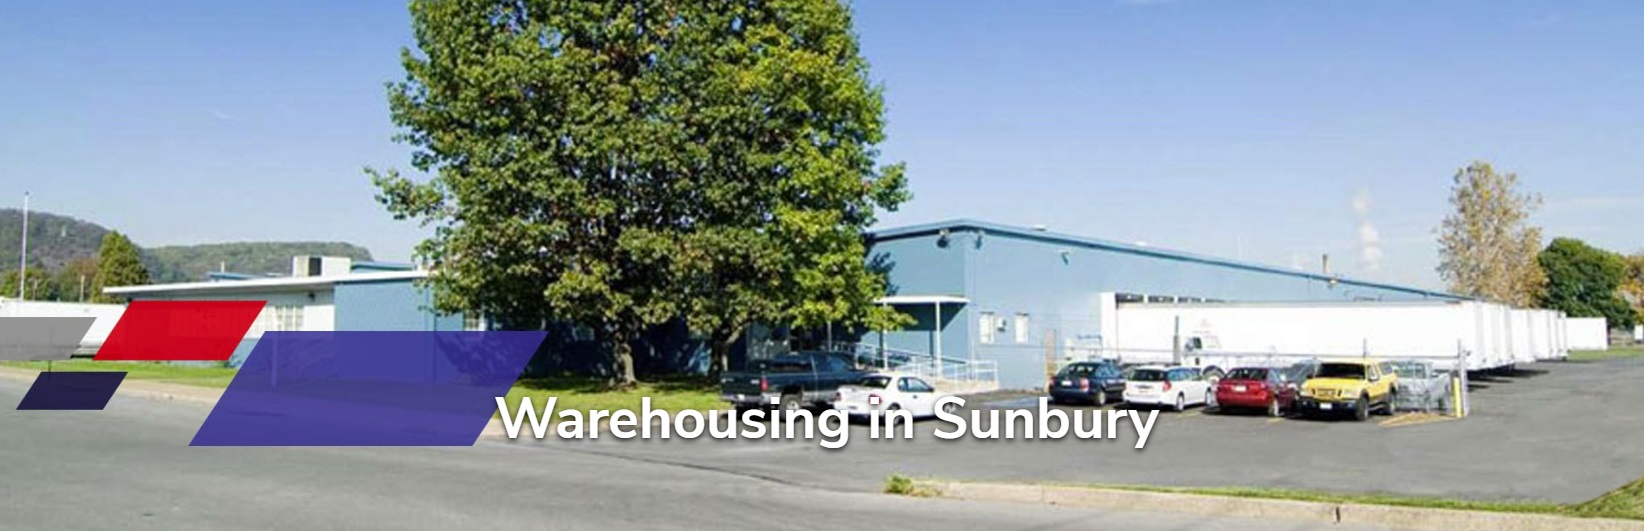 Property photo of Sunbury Distribution Center